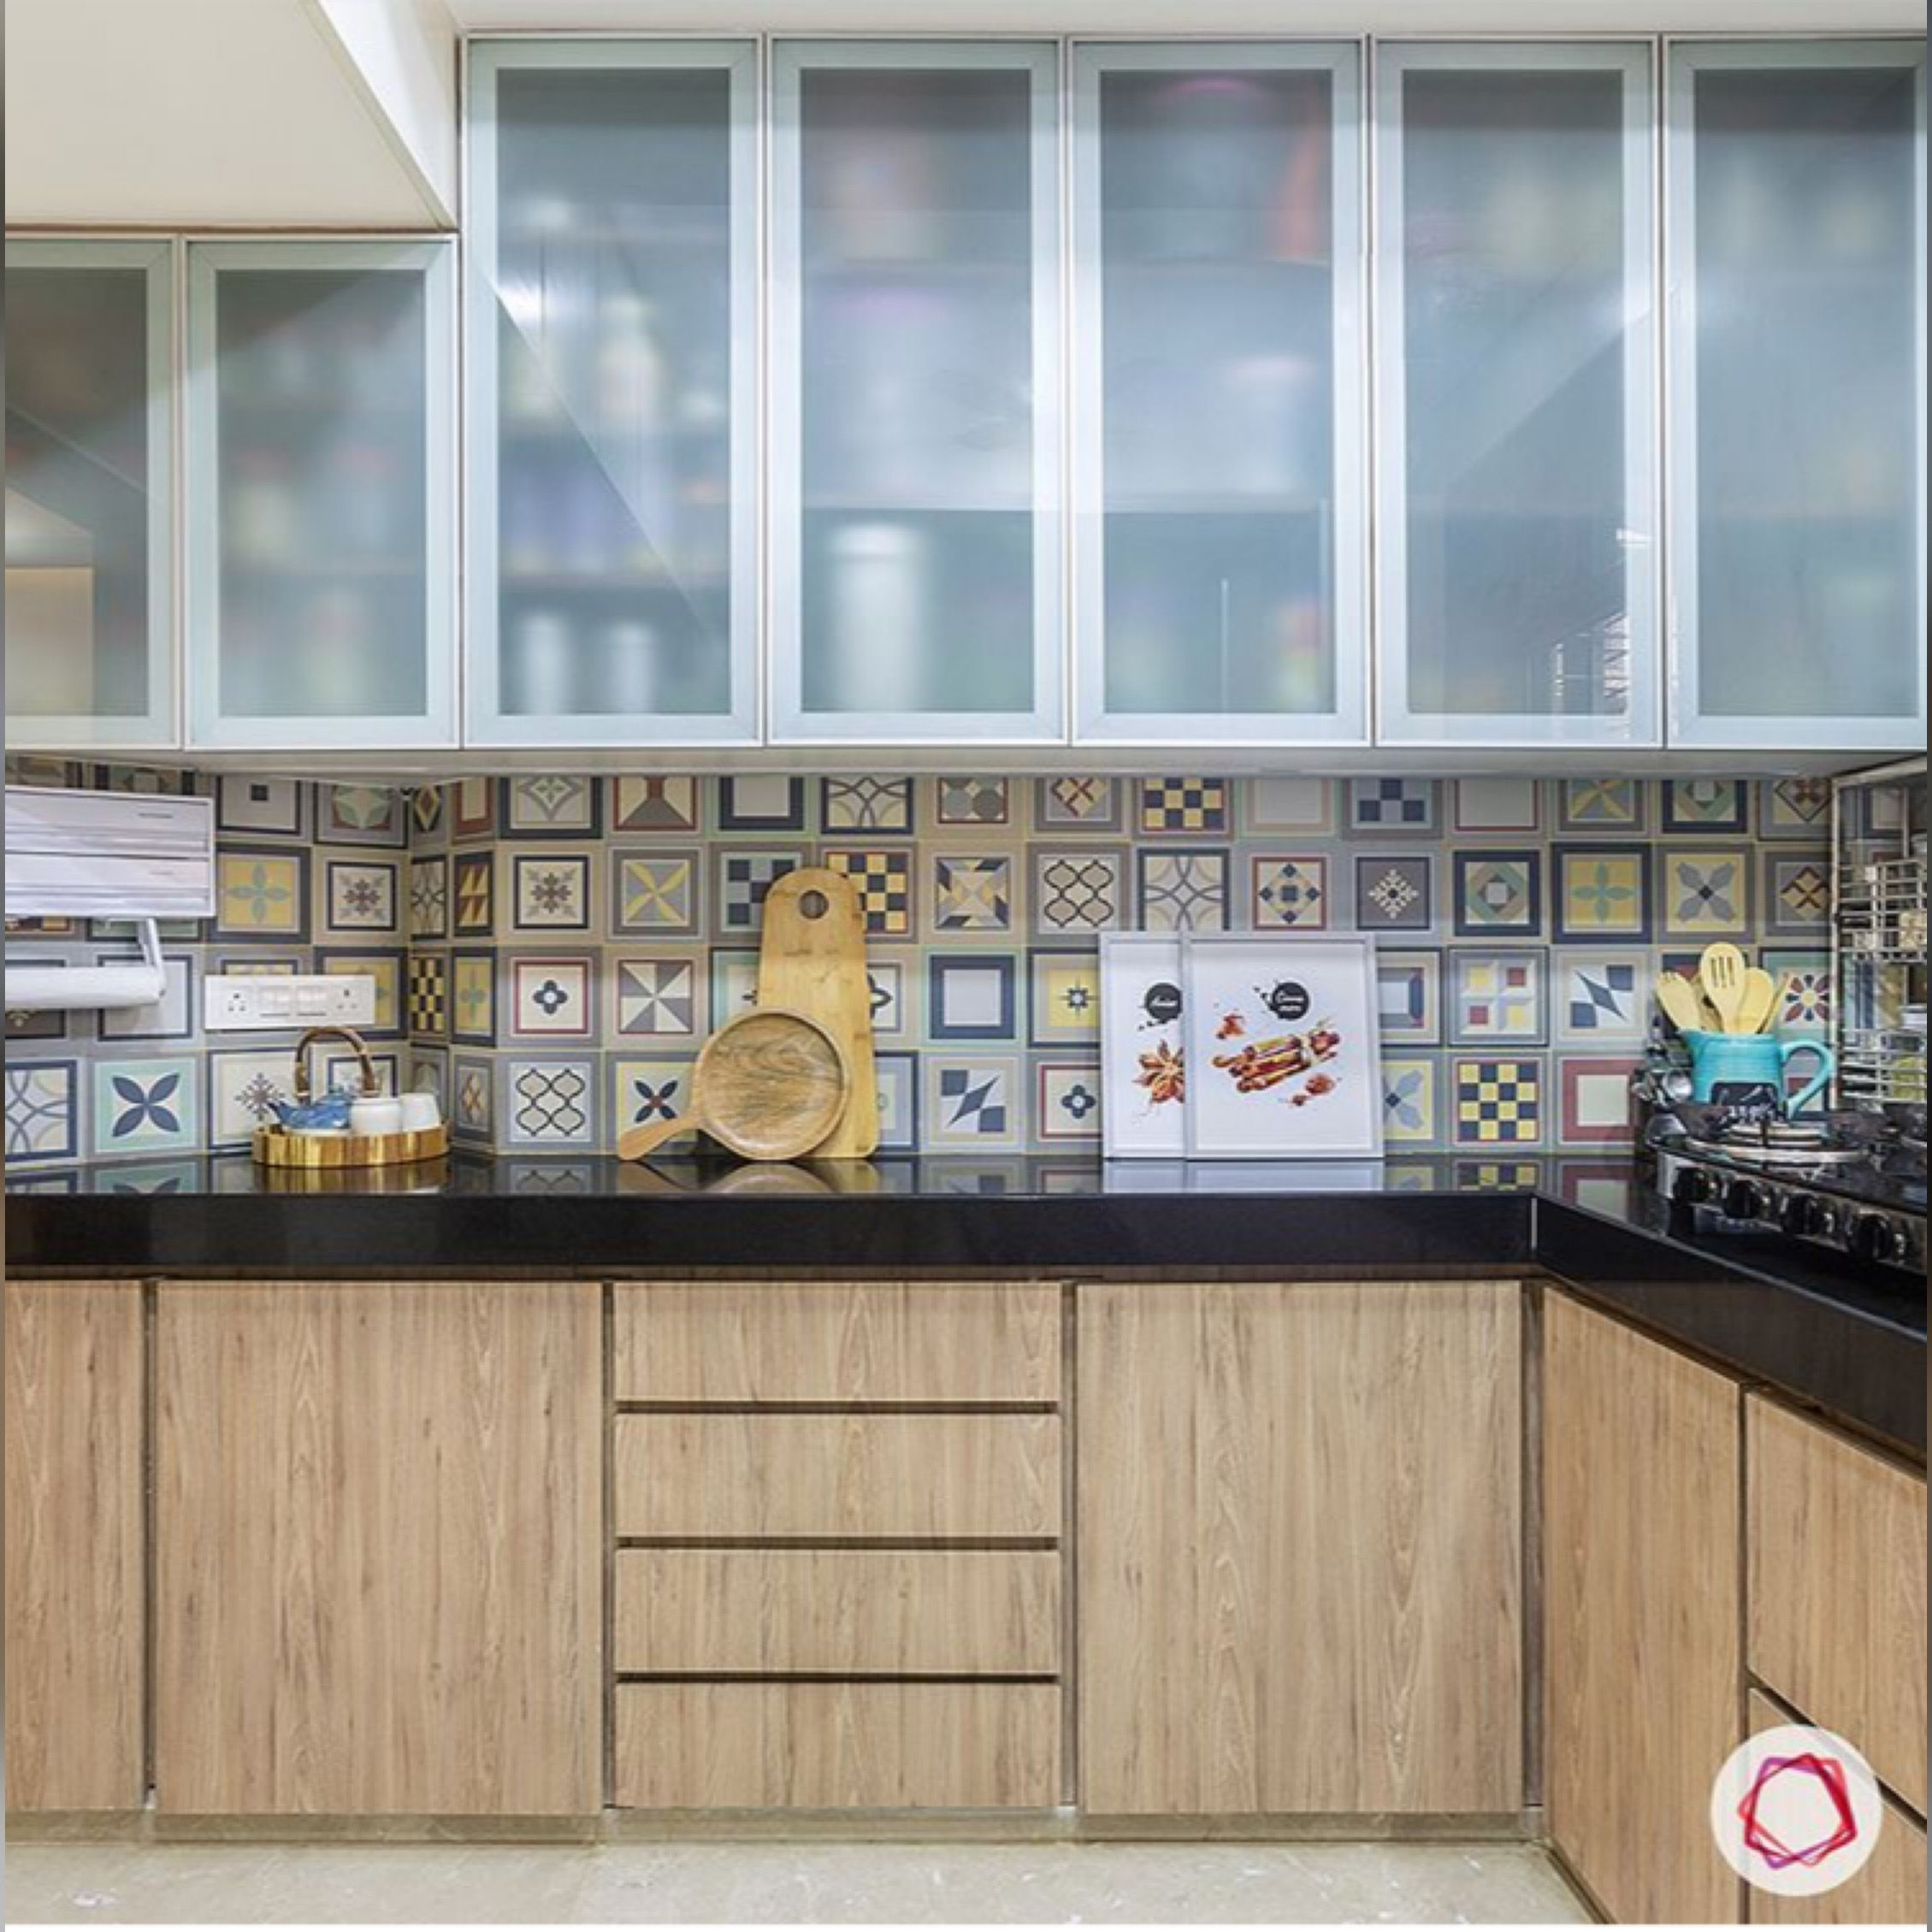 Pin By Sushma Shivakumar On Home Decor Types Of Kitchen Cabinets Kitchen Cabinets Materials Kitchen Cabinets